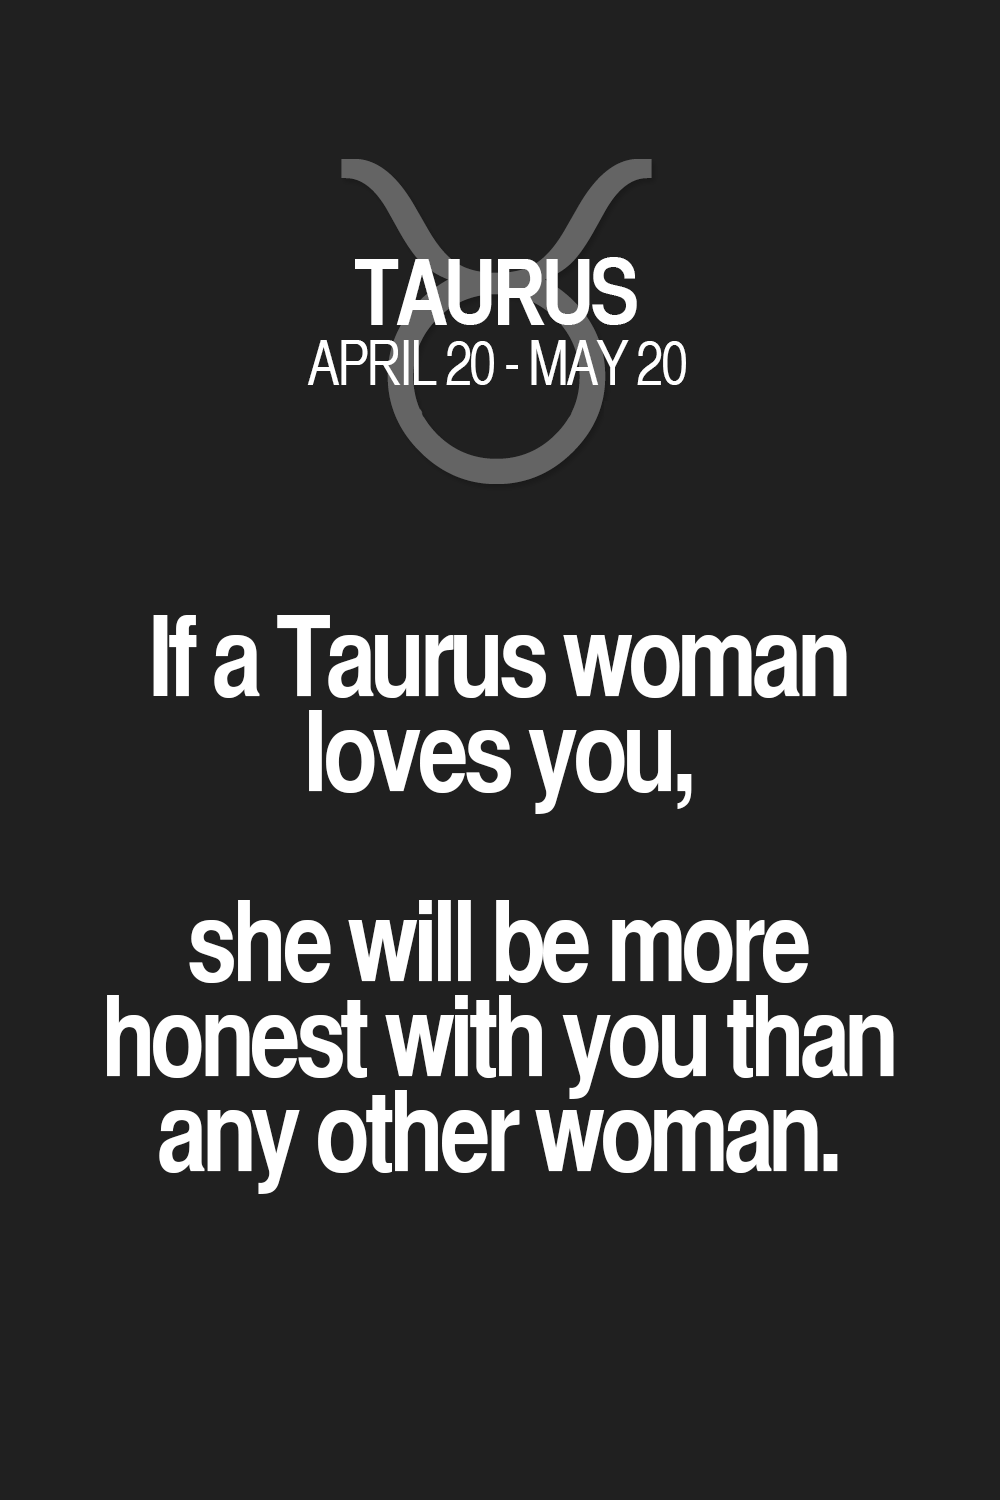 If a Taurus woman loves you, she will be more honest with you than any other woman. Taurus | Taurus Quotes | Taurus Horoscope | Taurus Zodiac Signs